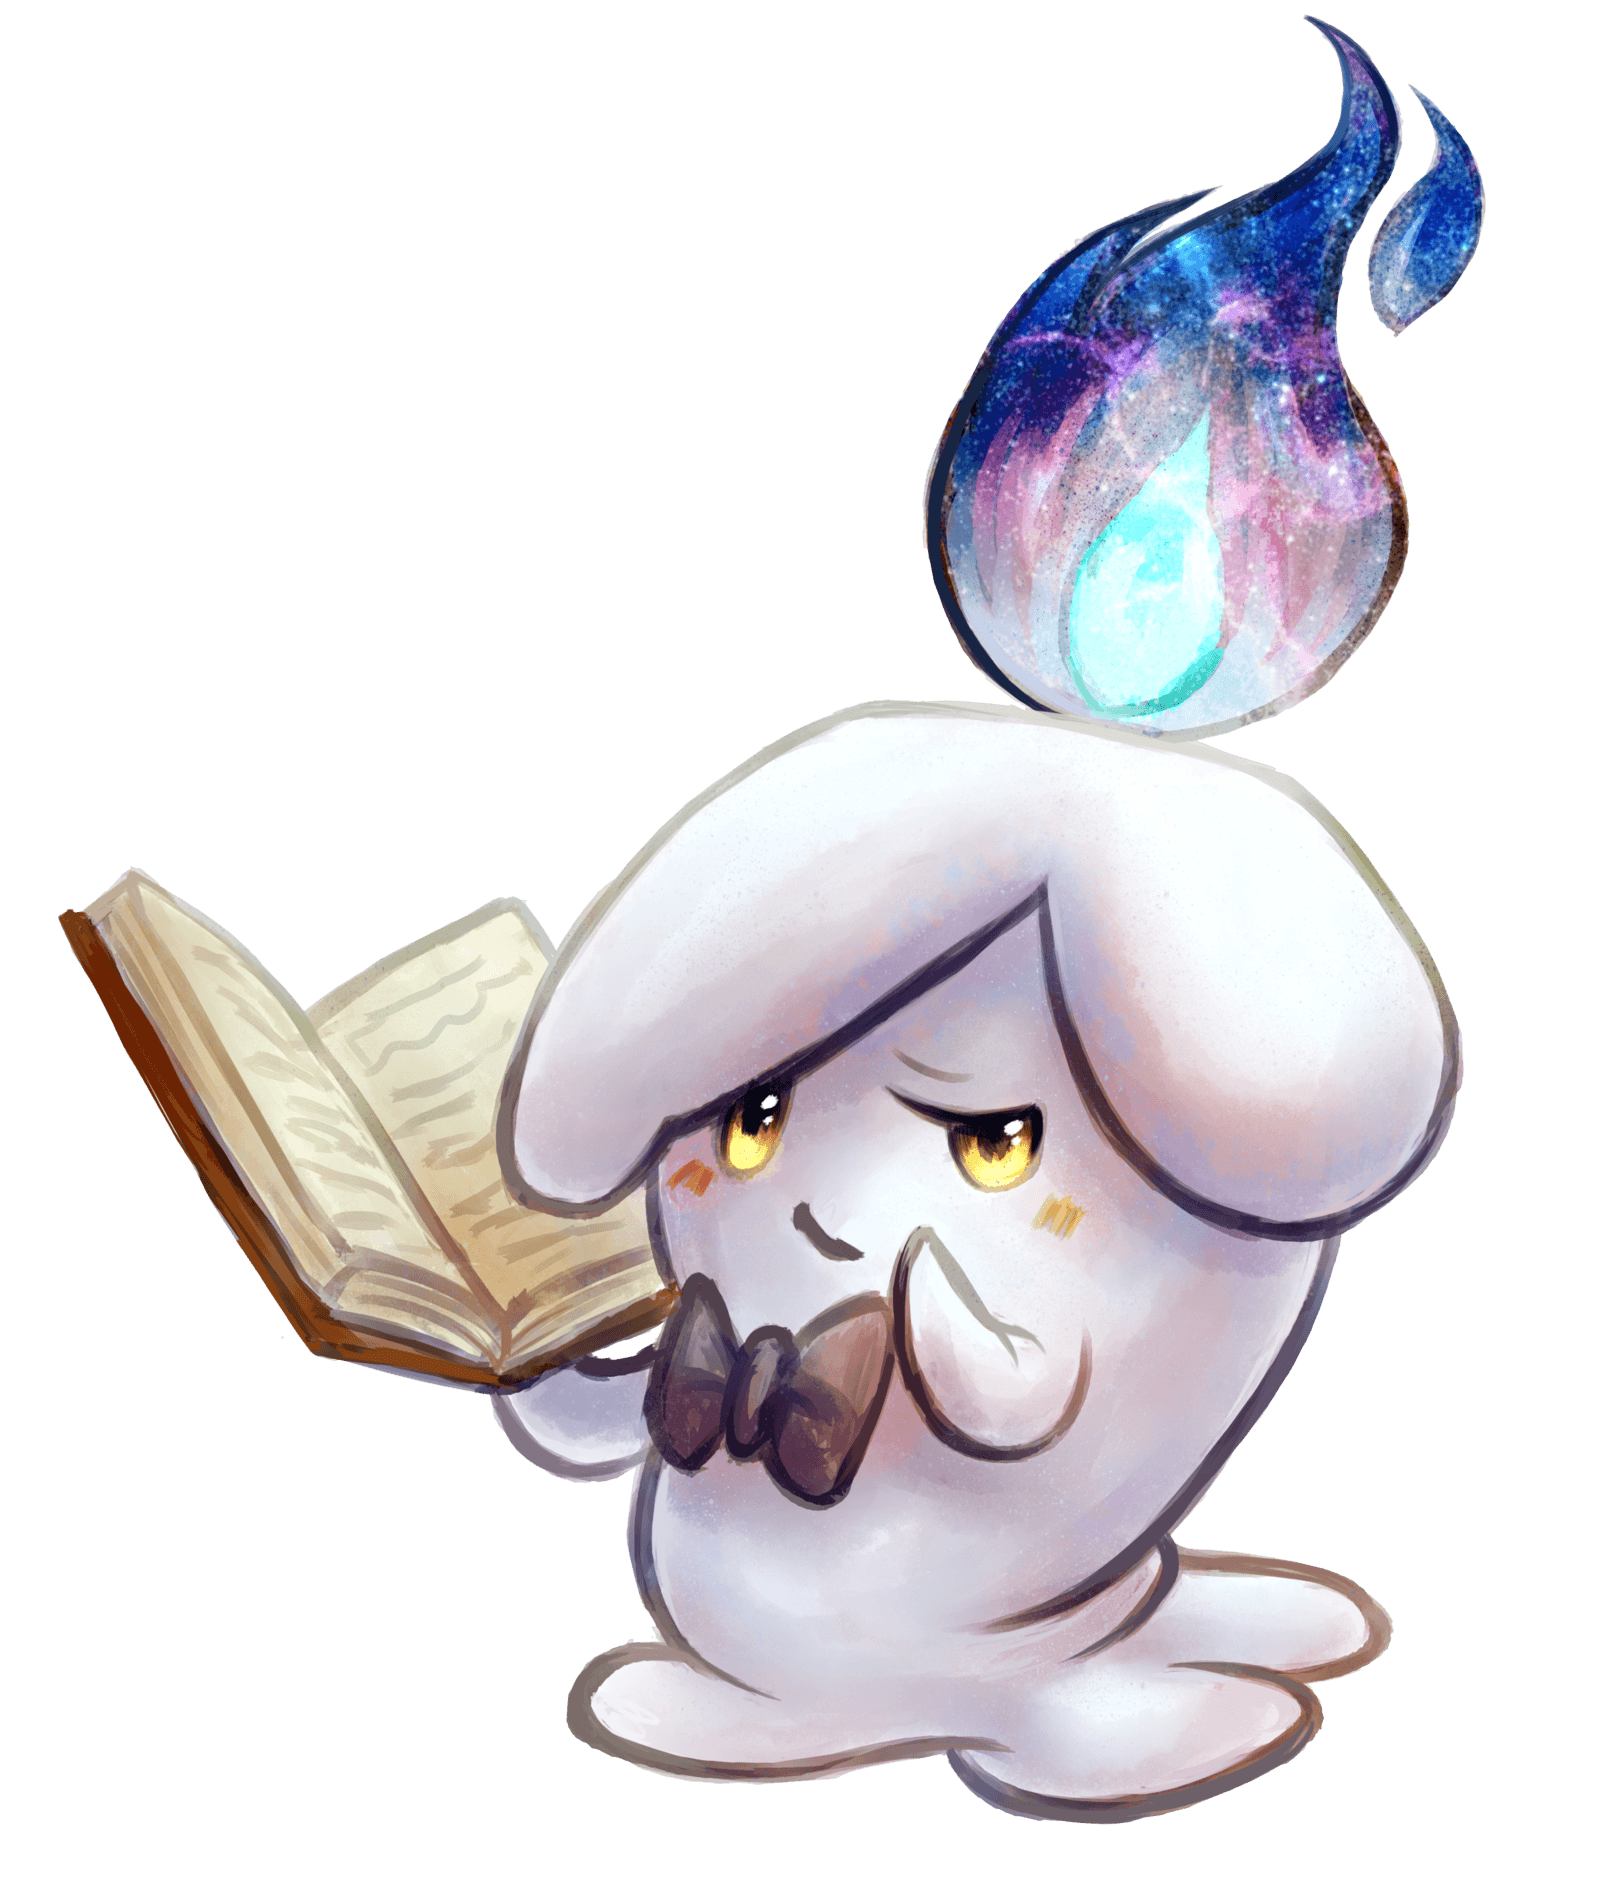 Lumiere the Litwick by Haychel on DeviantArt